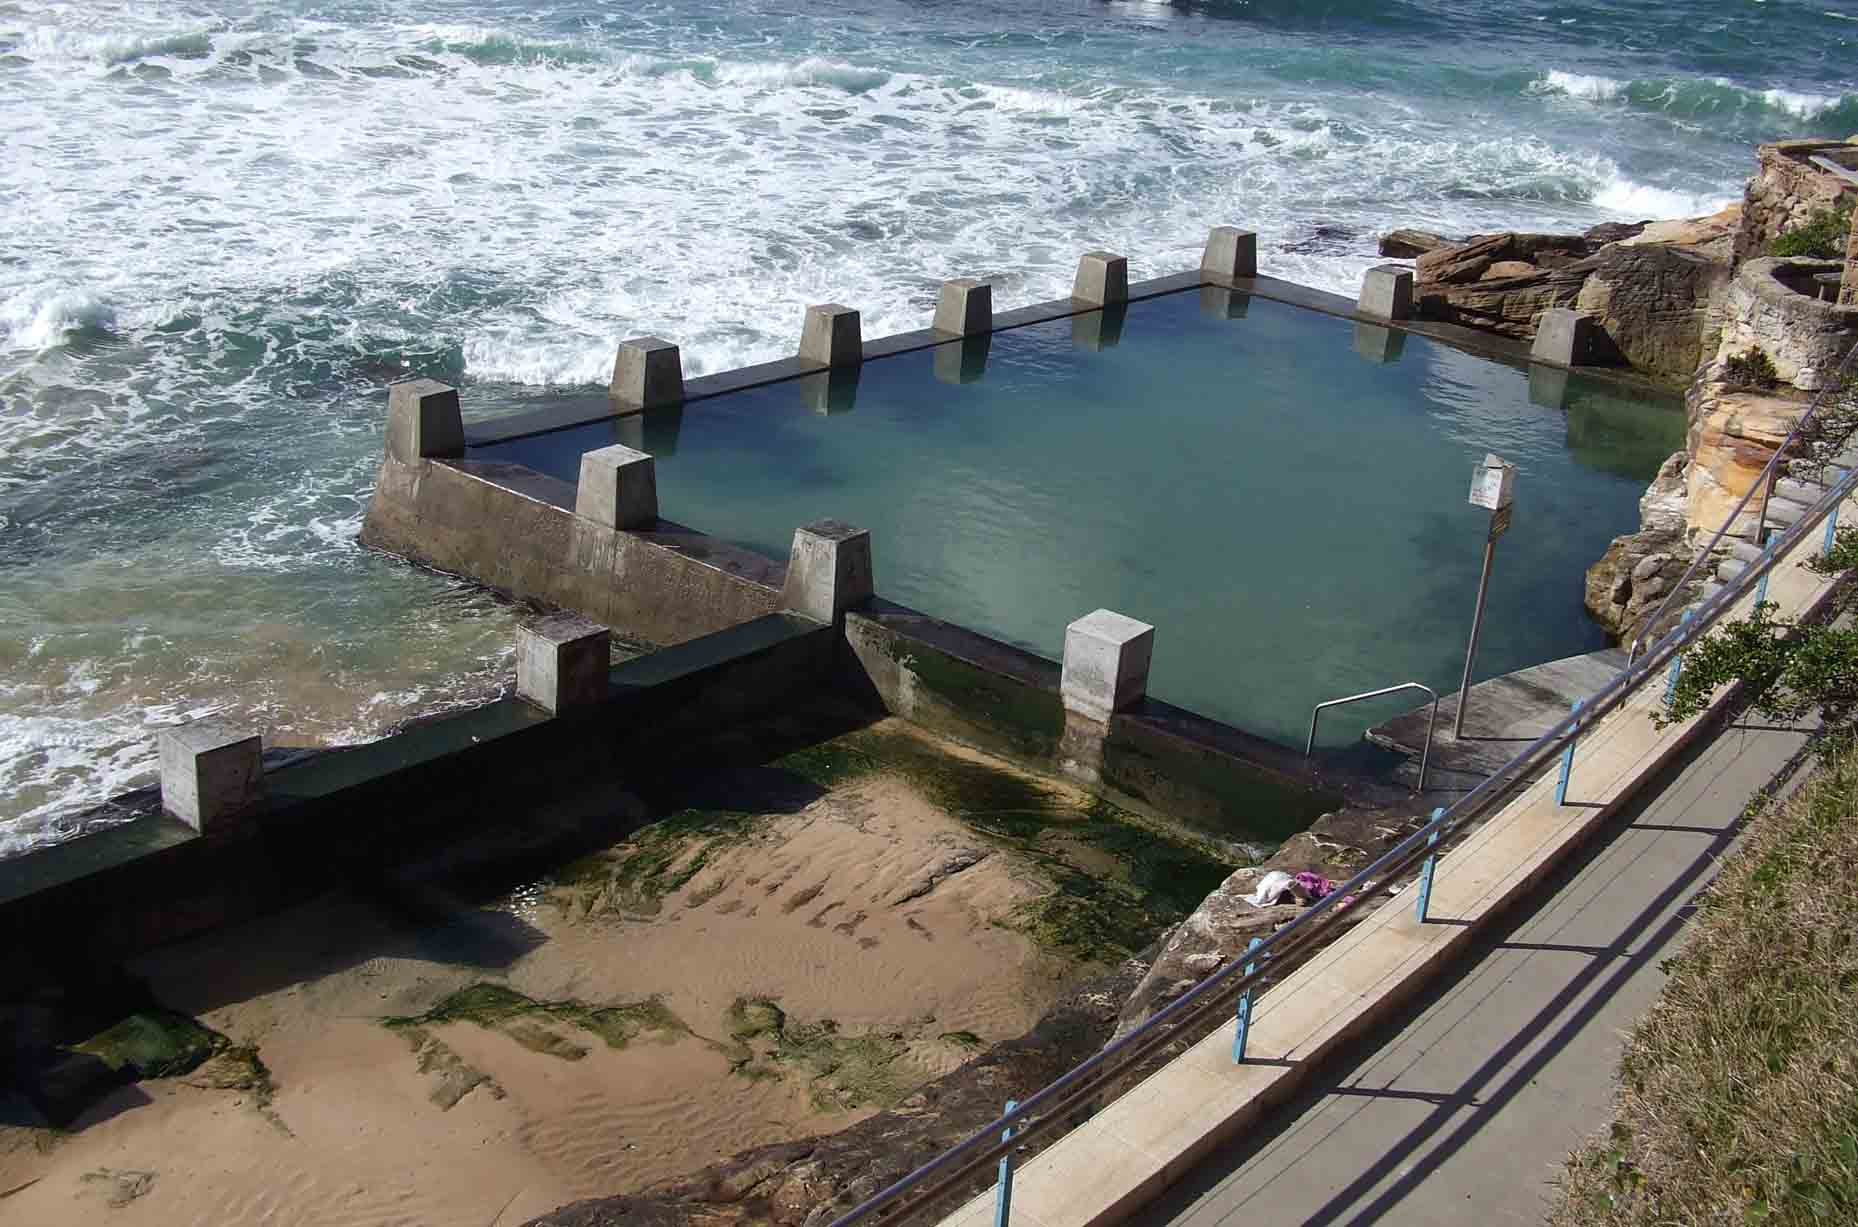 12 Of The Coolest And Most Unusual Swimming Pools In The World Wow - Unusual-swimming-pools-around-the-world